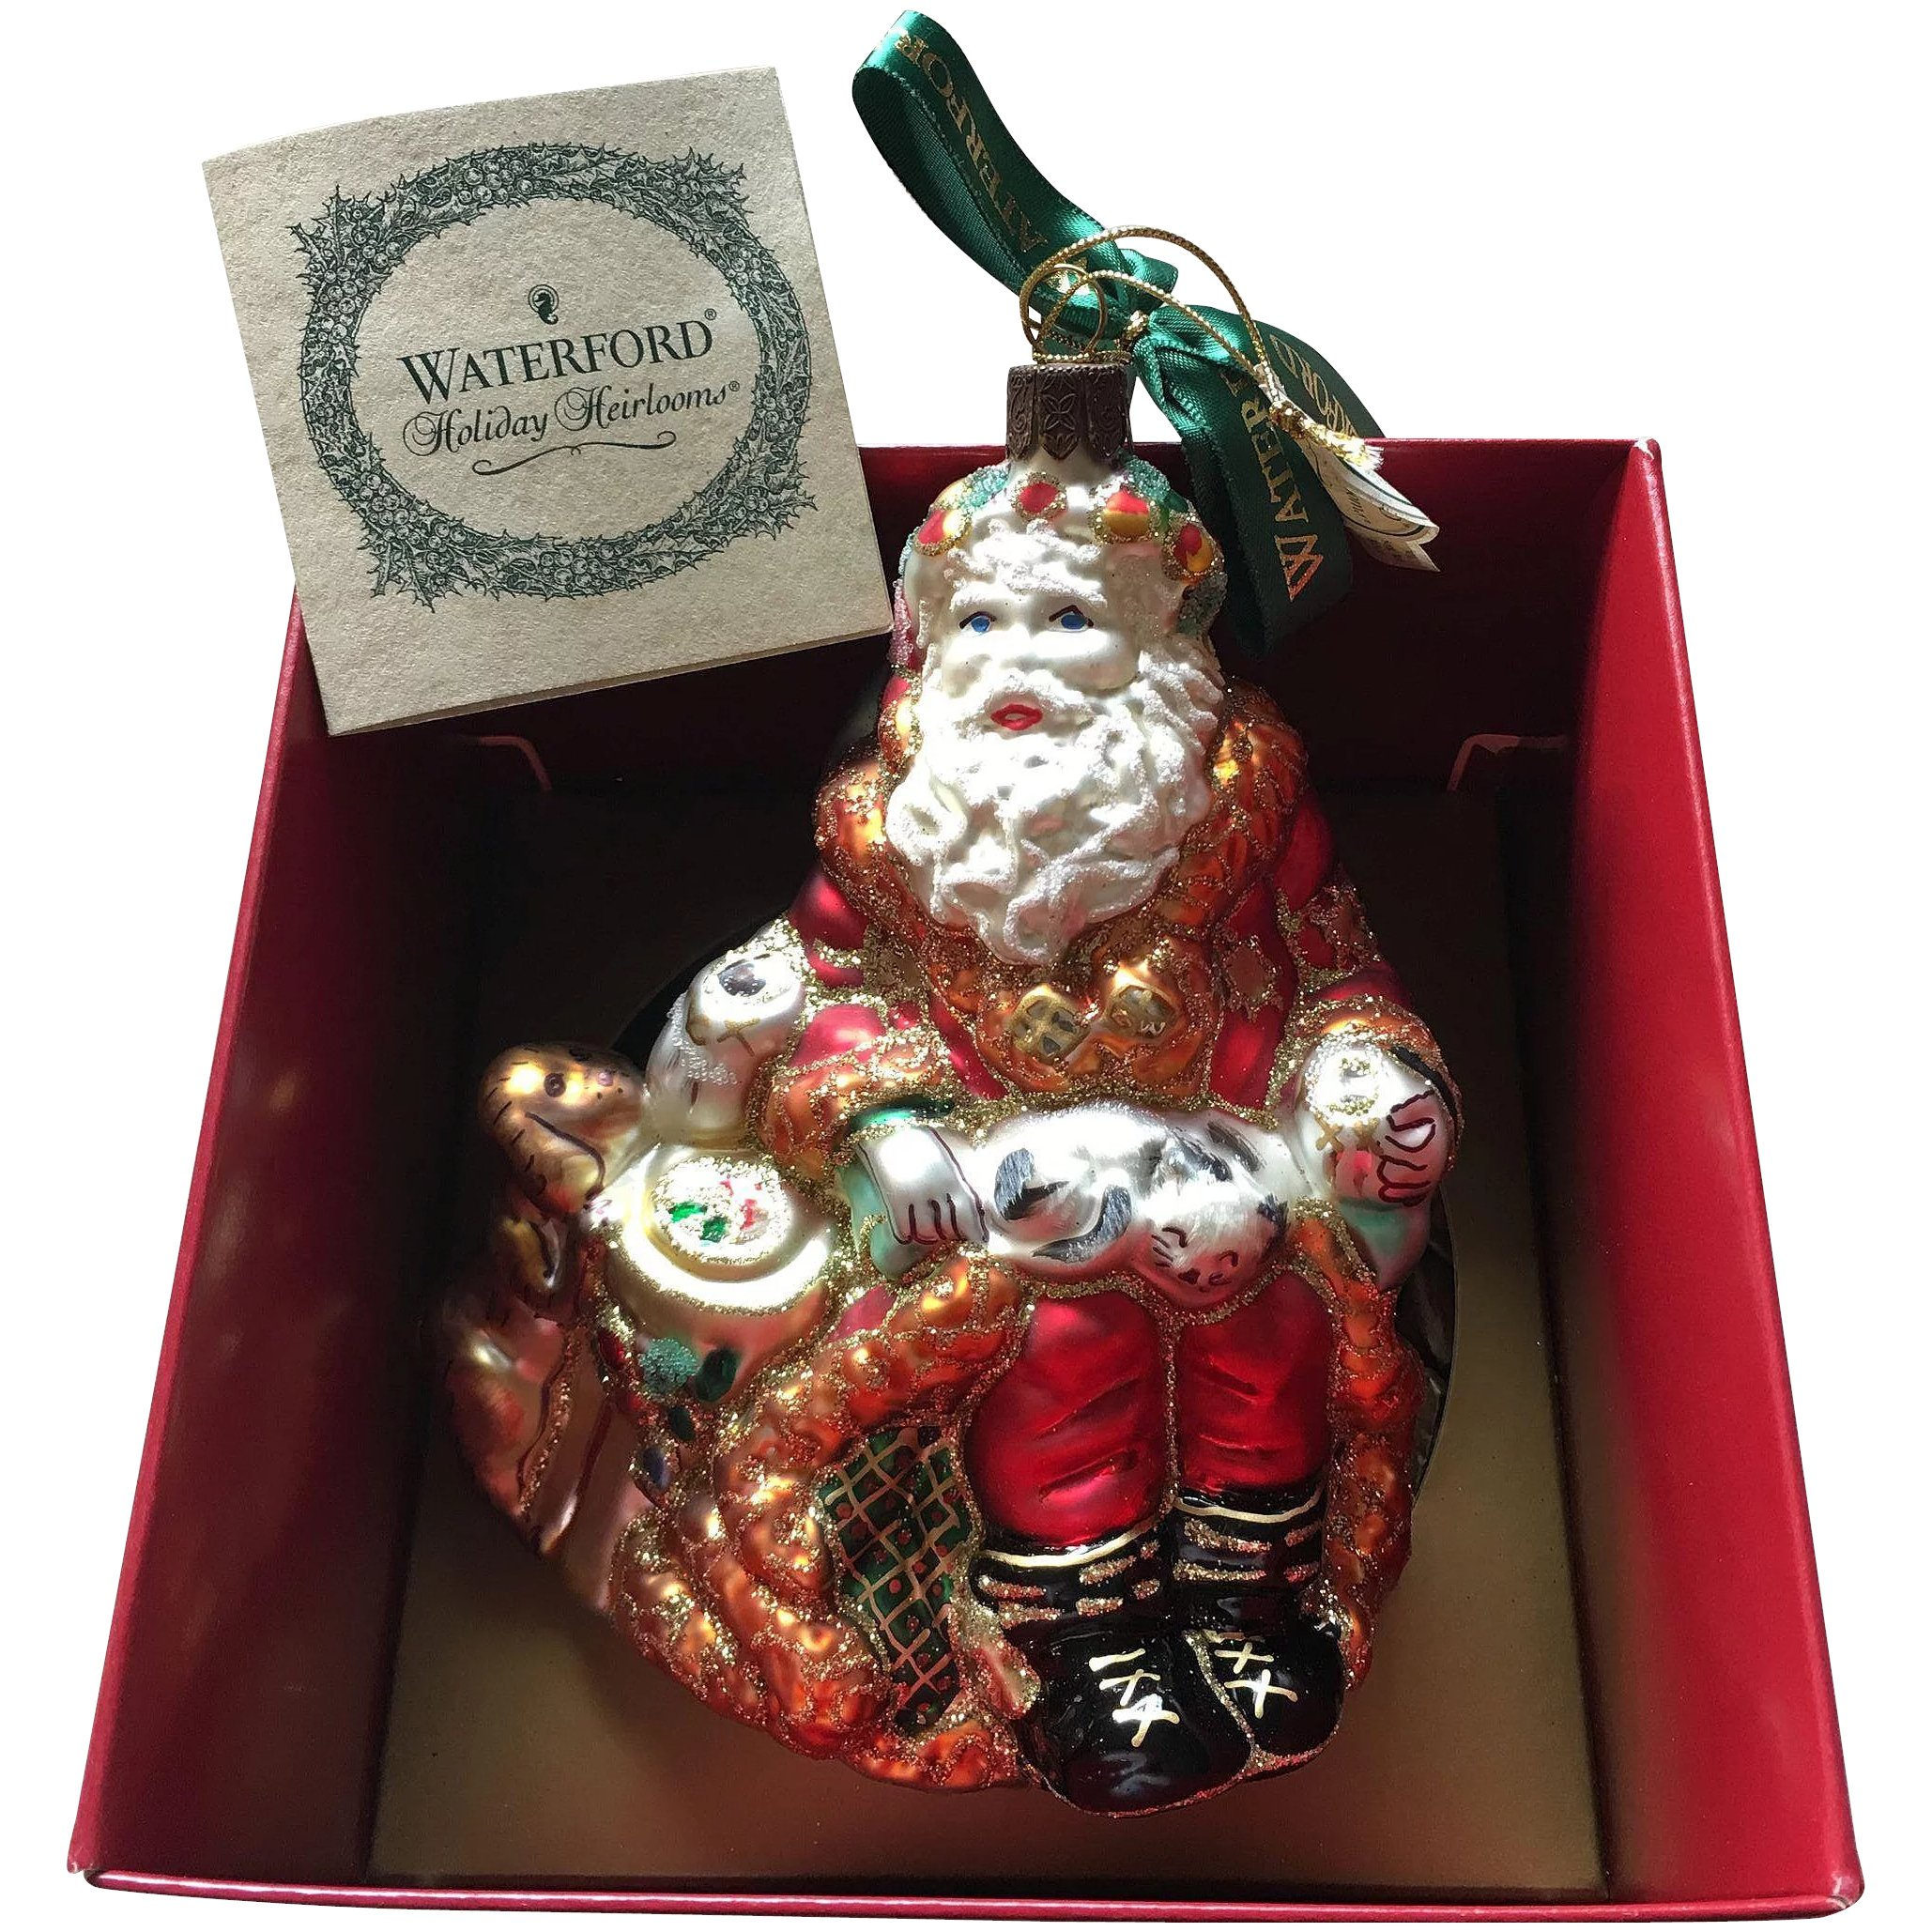 Waterford Christmas Ornaments.Waterford Crystal Holiday Heirlooms Santa Ornament